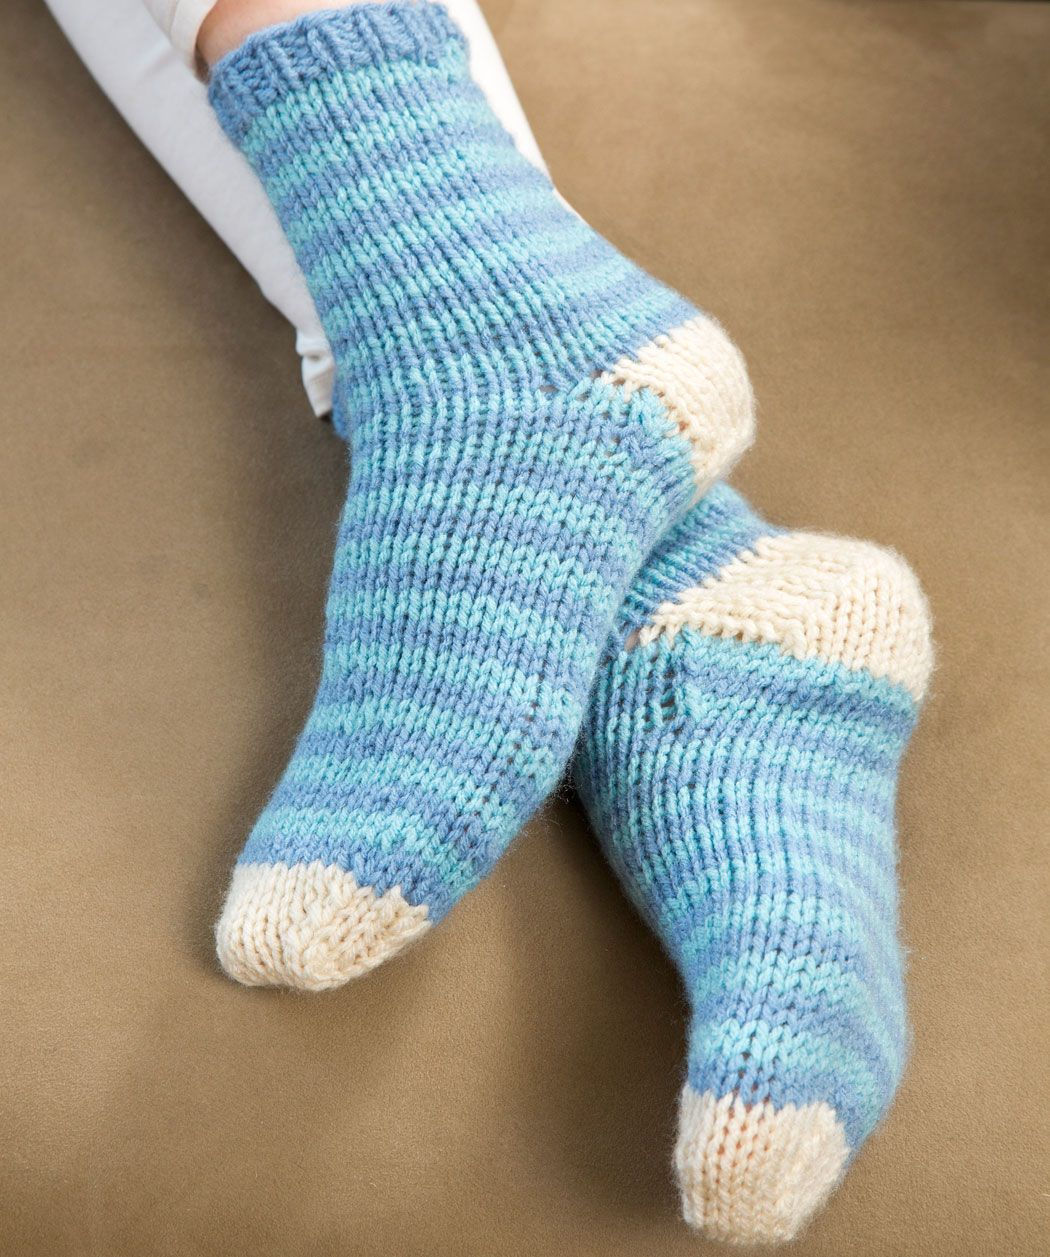 Relax At Home Knit Socks Easy Double Pointed Needles One Set Each